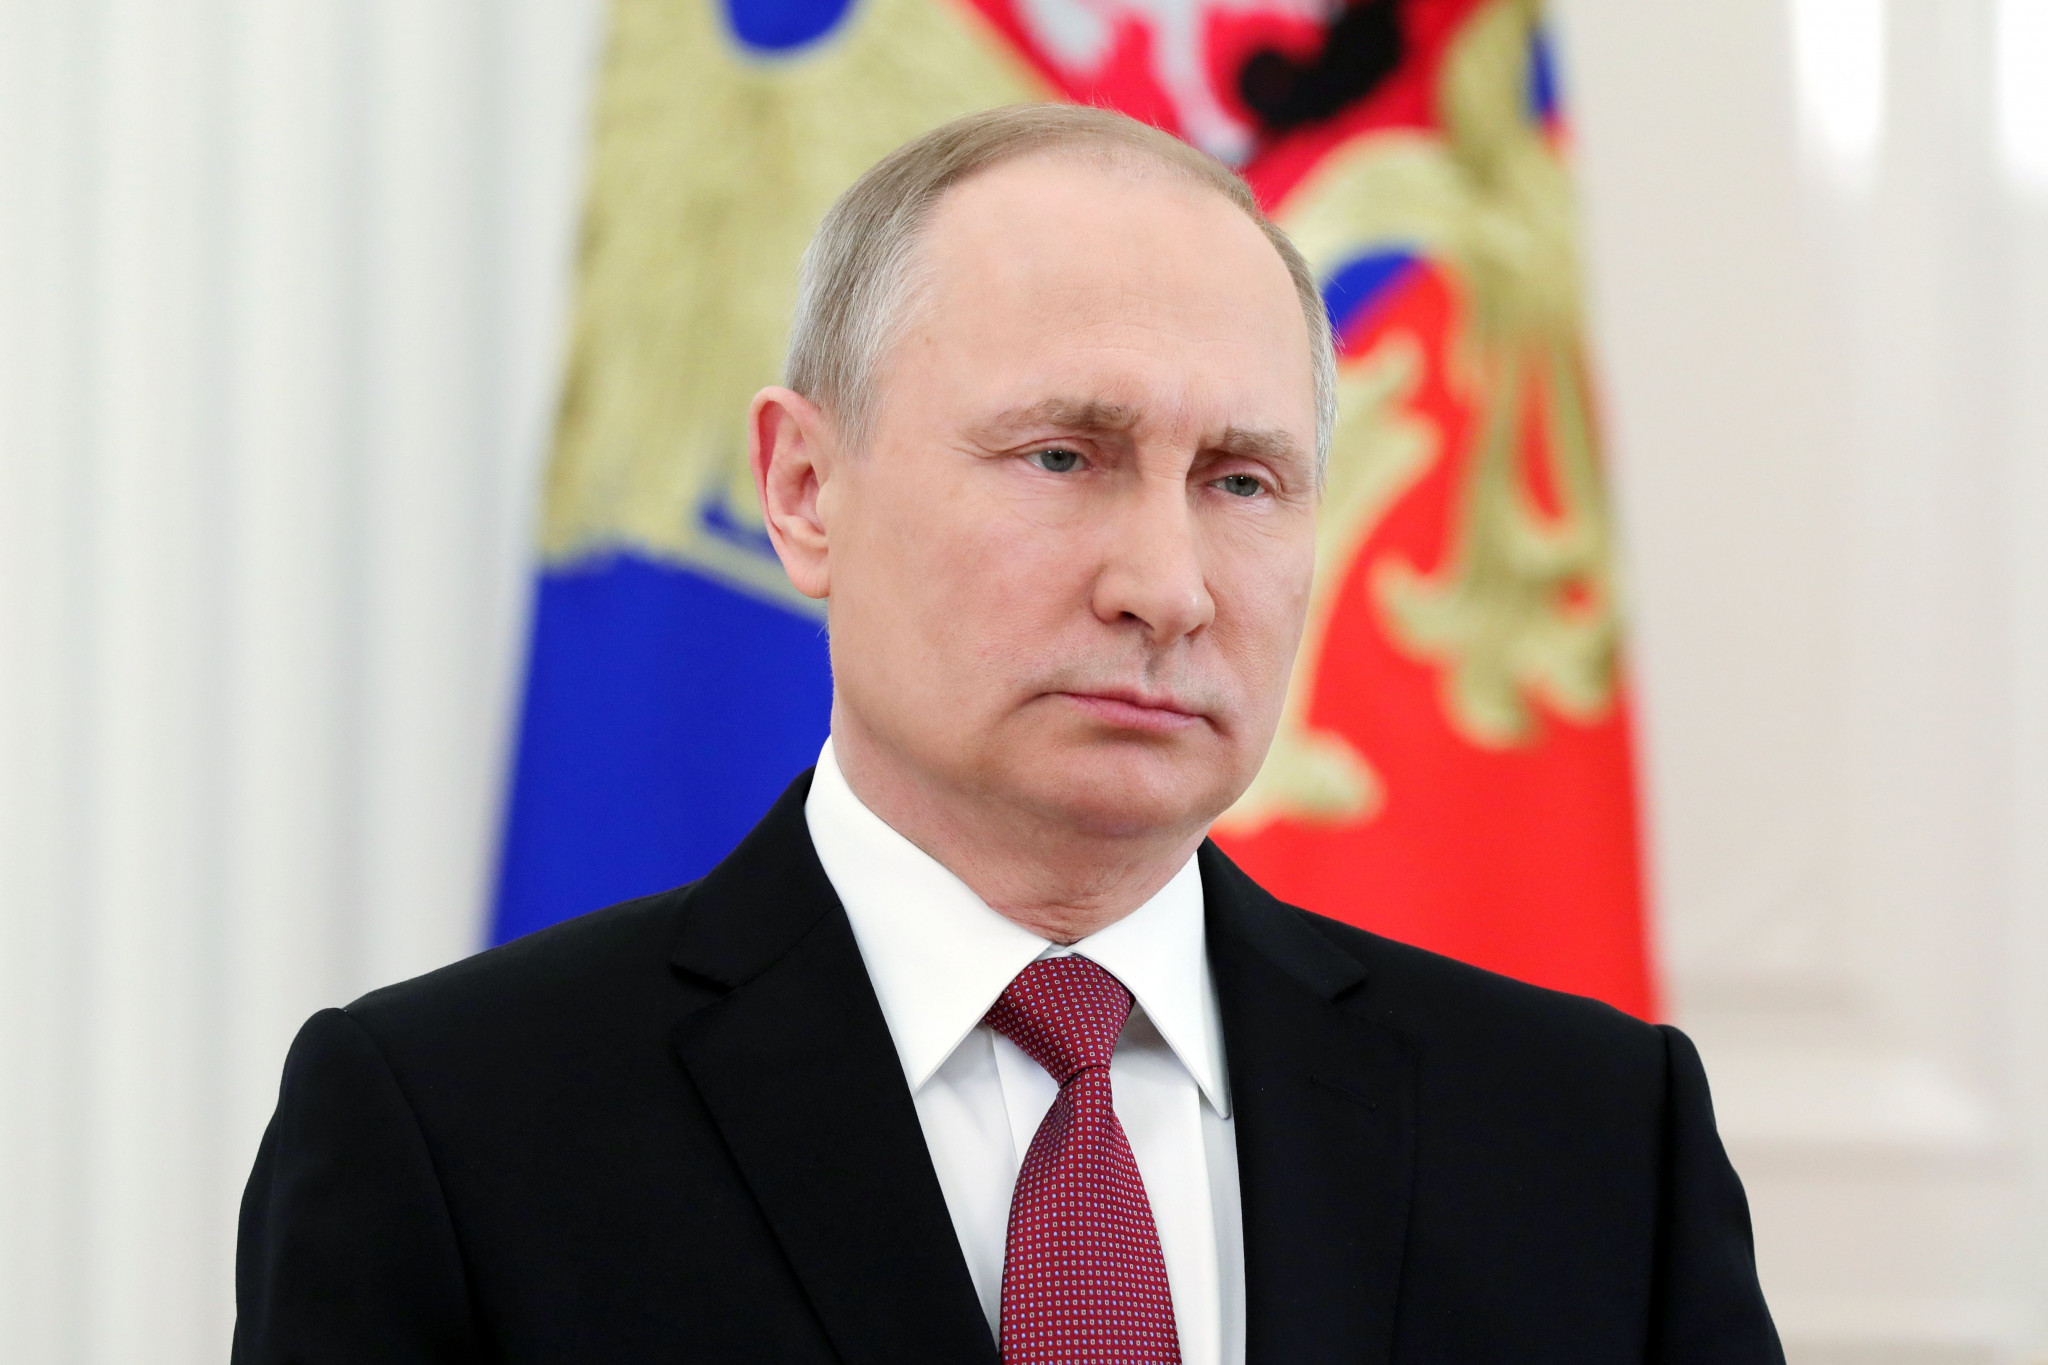 Russian President Putin gives green light for esports in schools